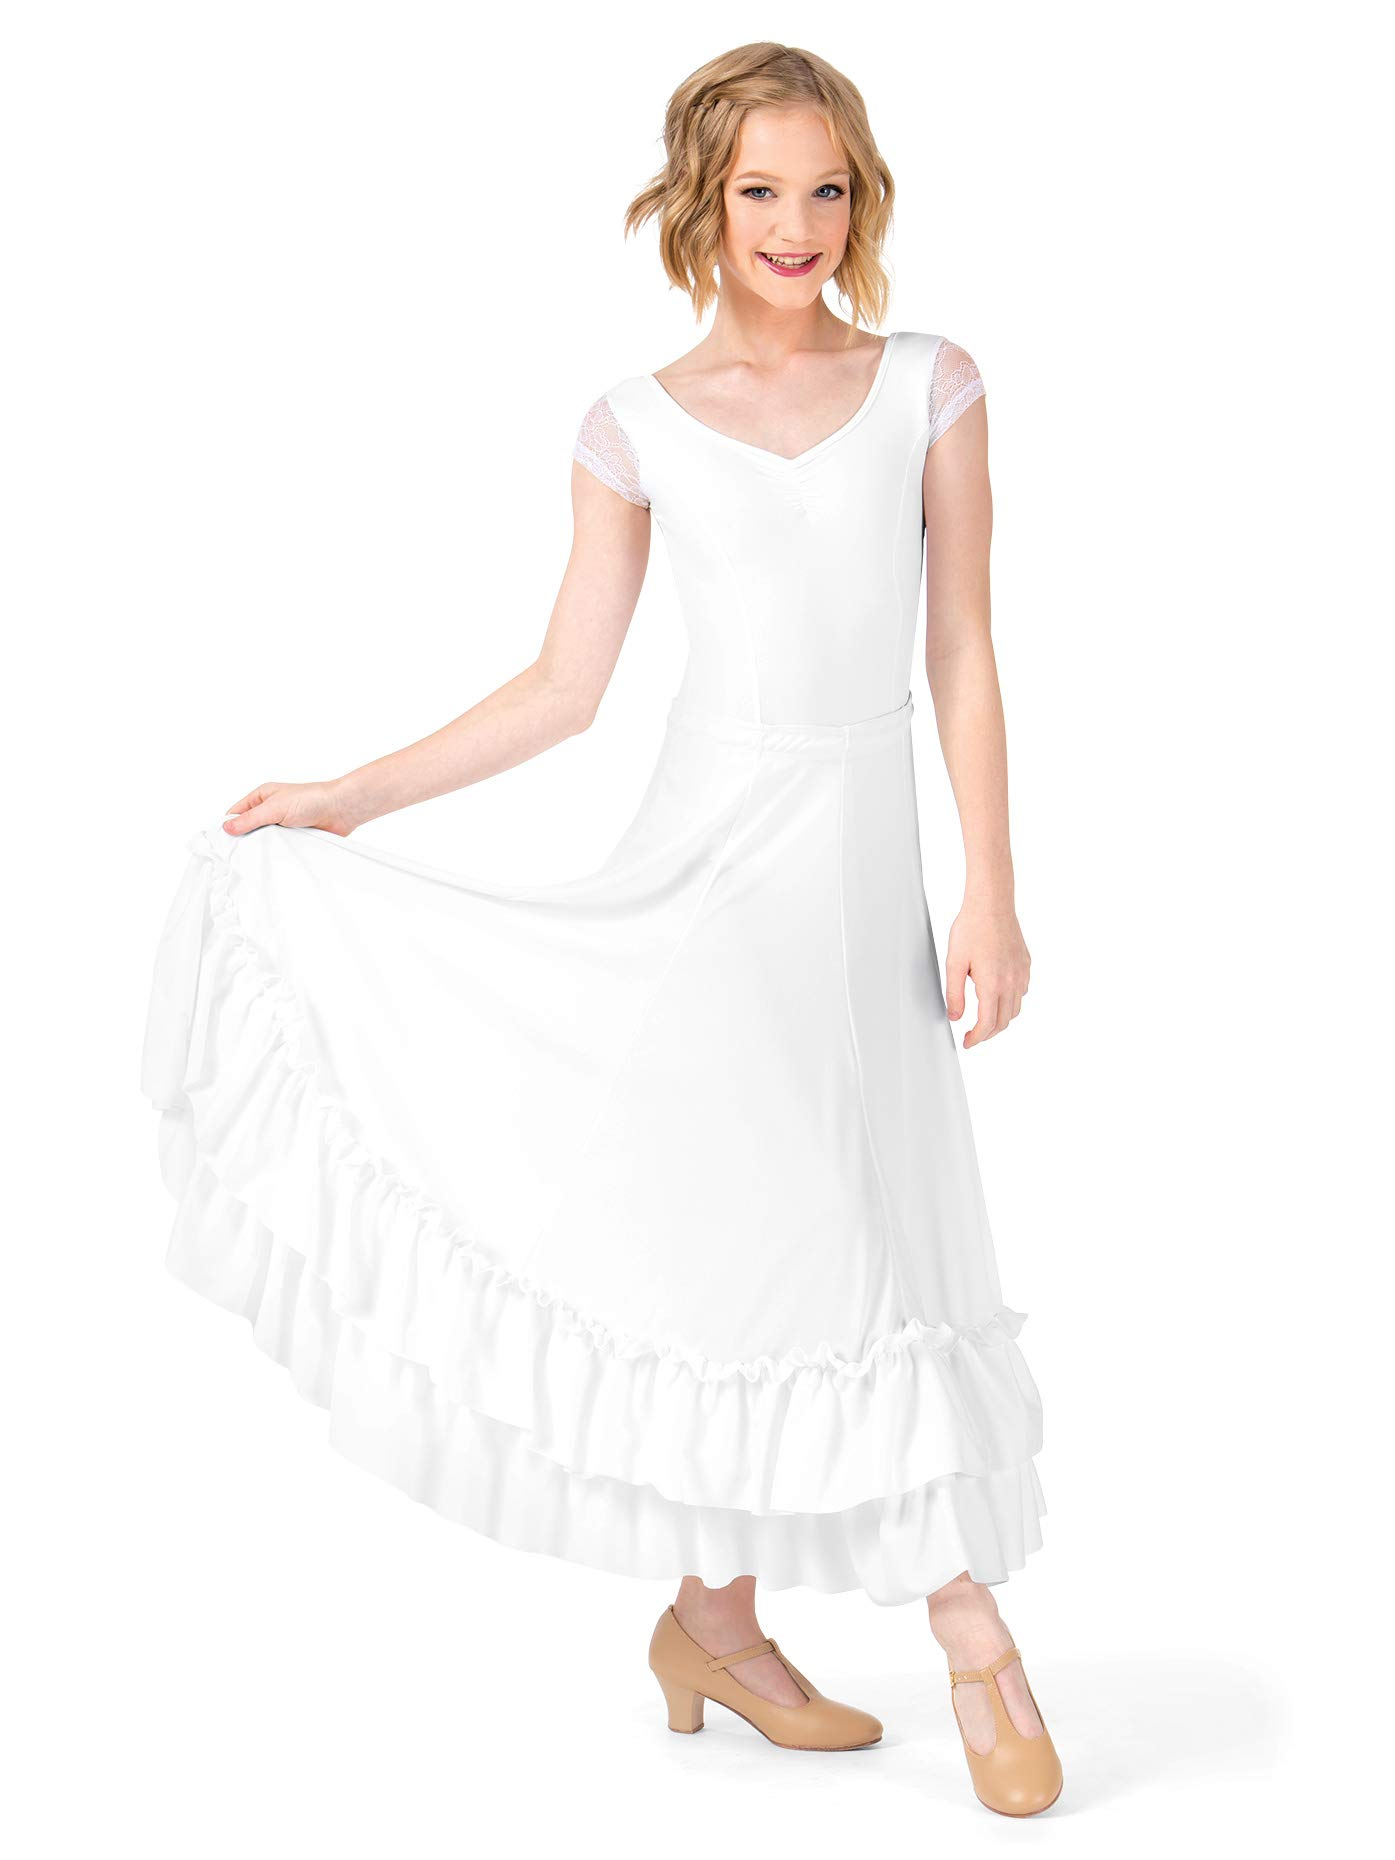 Bal Togs Girls Flamenco Skirt,9100CWHTL,White,Large by Bal Togs